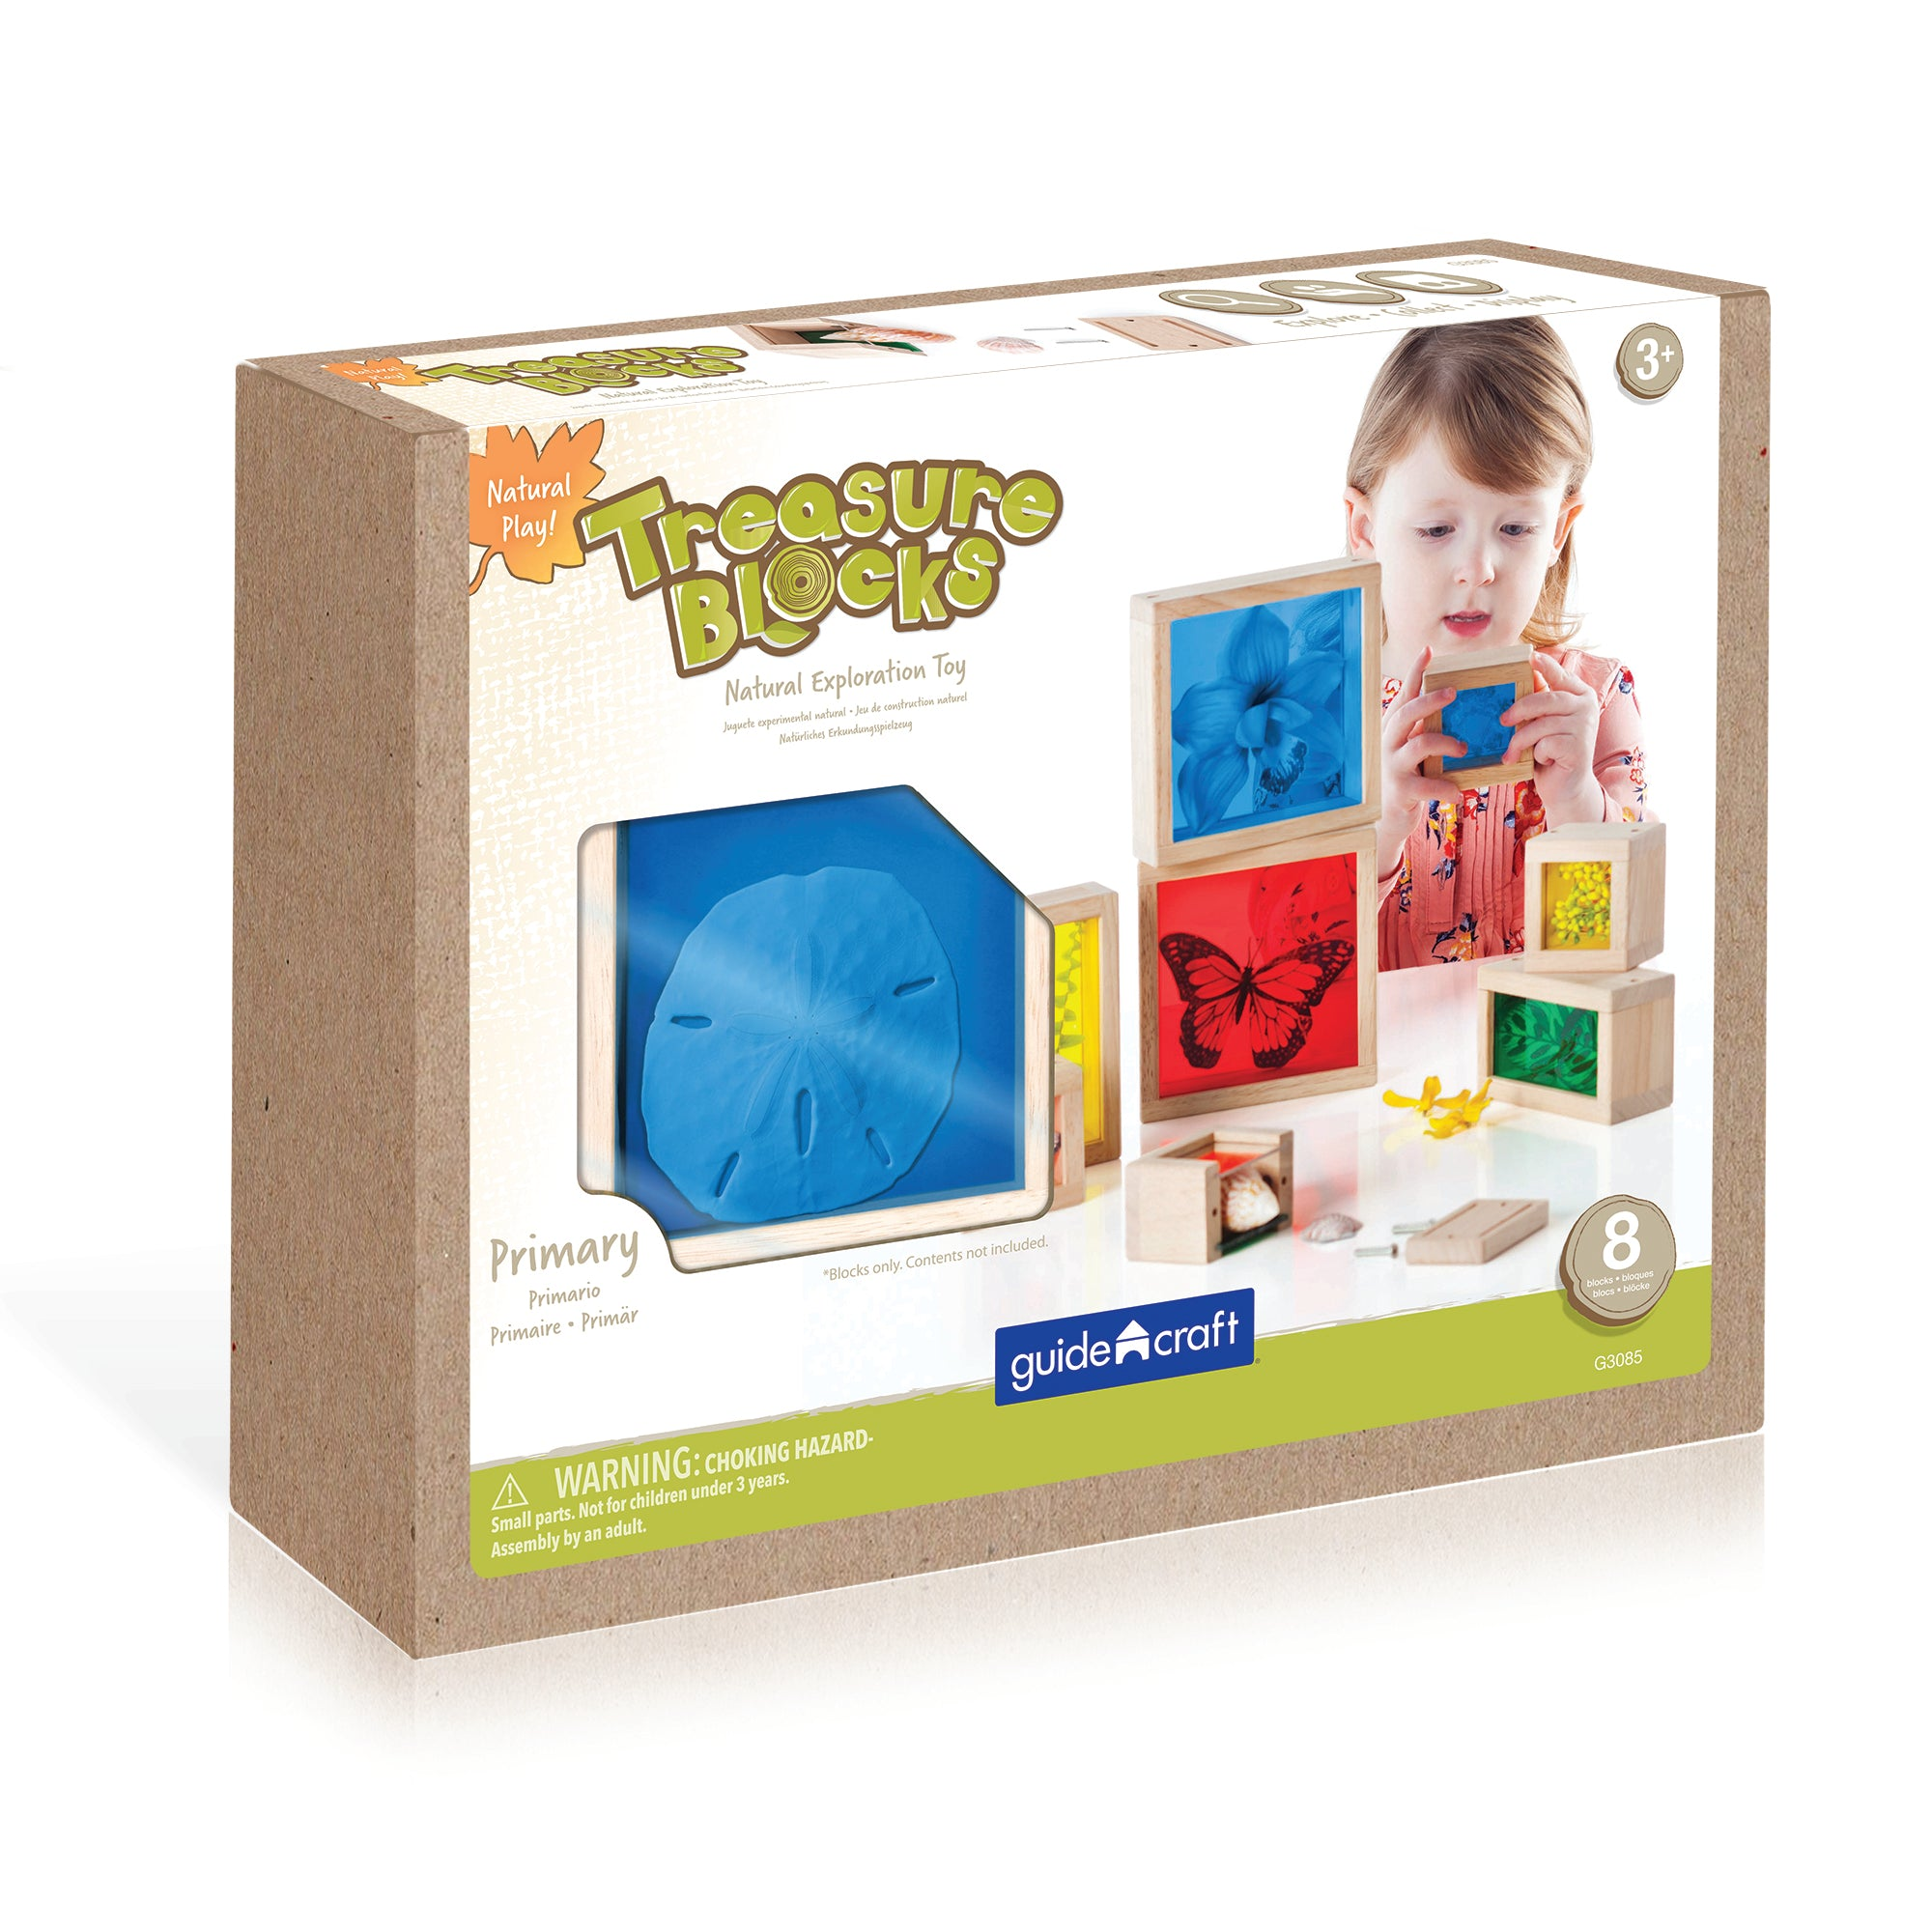 Guidecraft Treasure Blocks - Primary